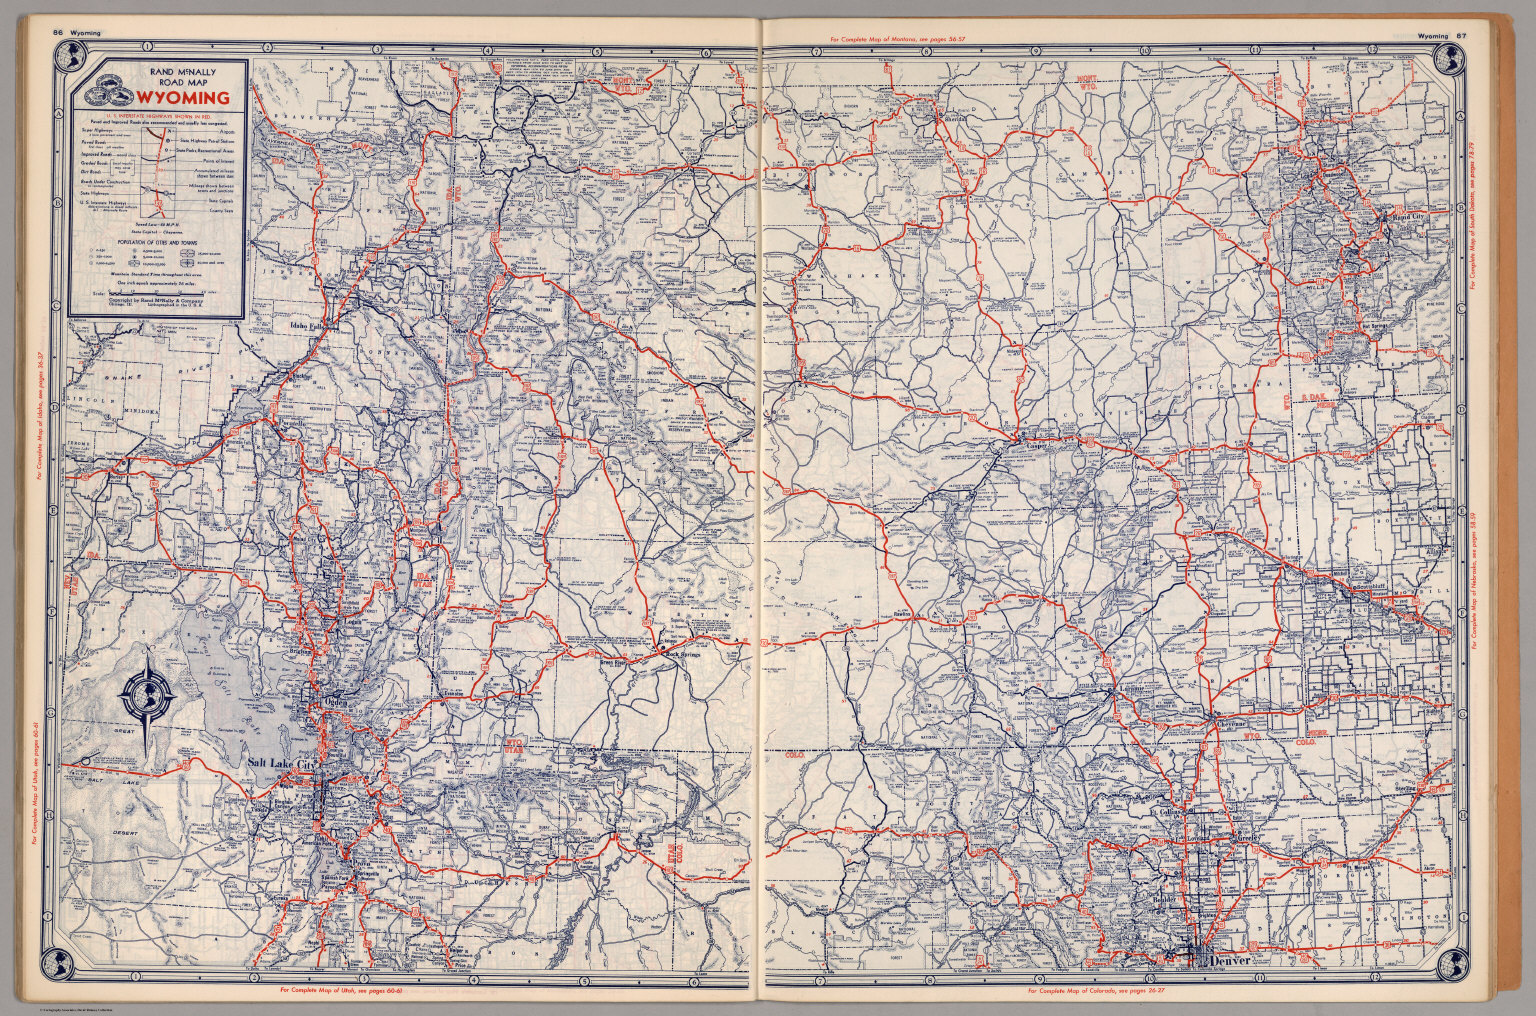 Road map of Wyoming - David Rumsey Historical Map Collection